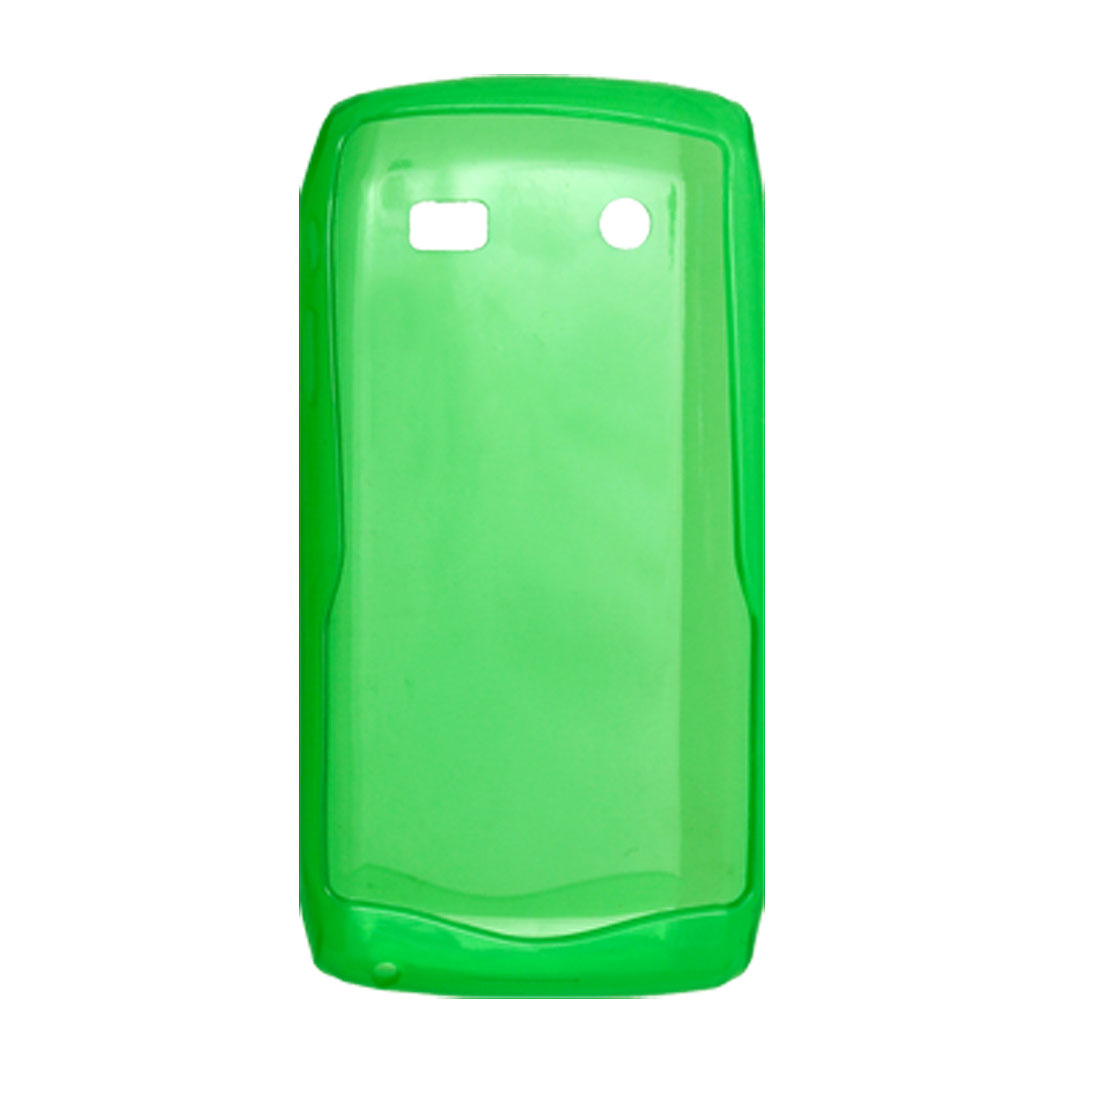 Plastic Case Green Soft Cover Shell for Blackberry 9100